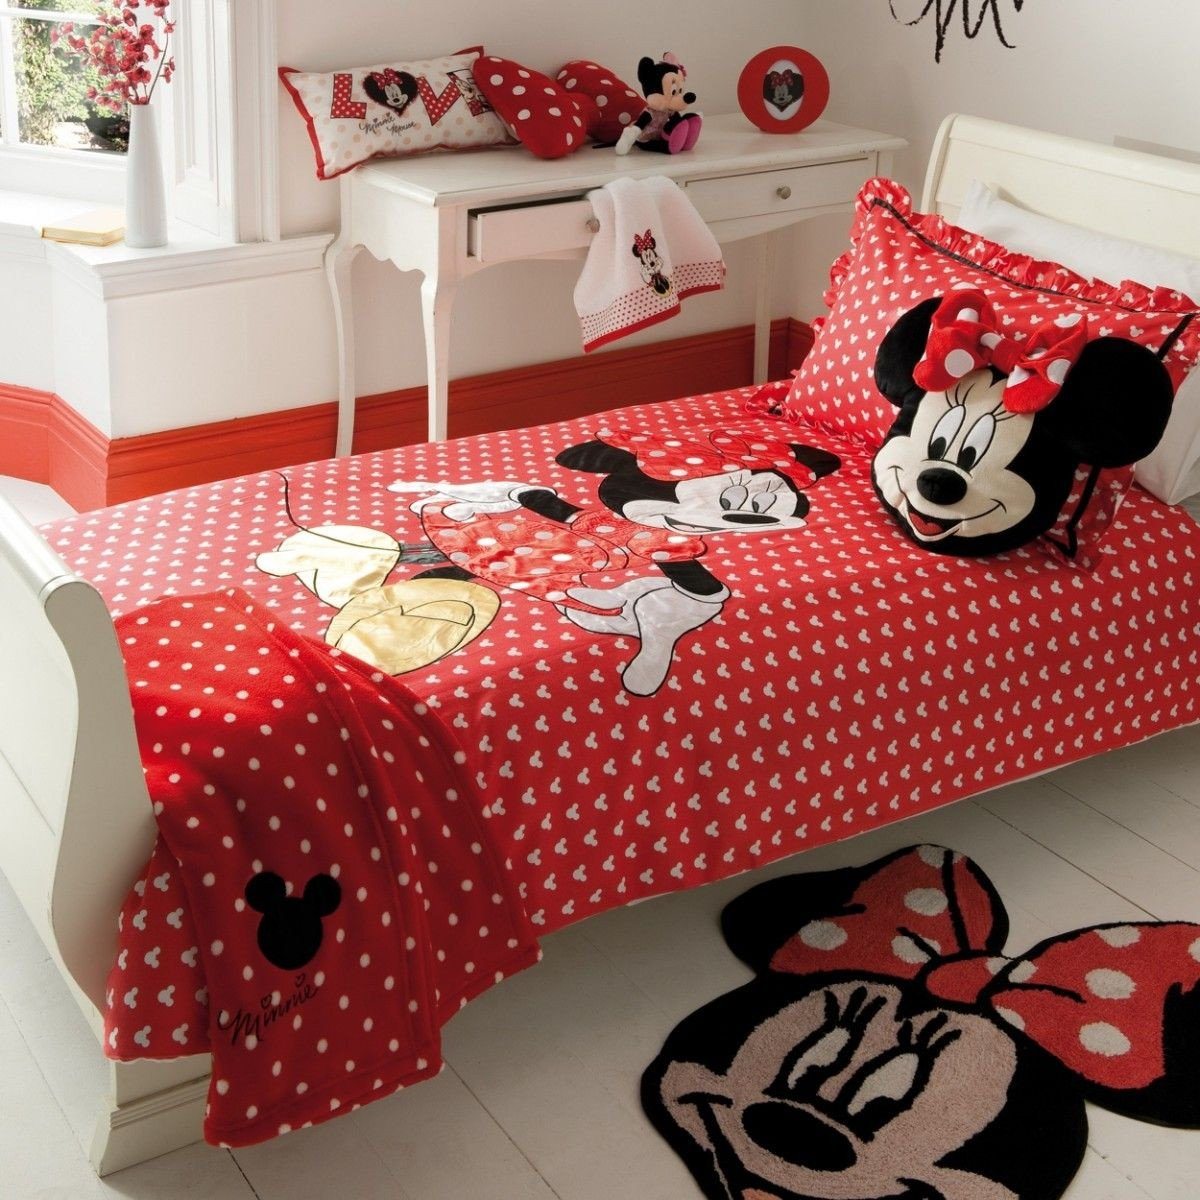 Mickey Mouse Bedroom Decorations Beautiful Minnie Mouse Wall Decorating Kit